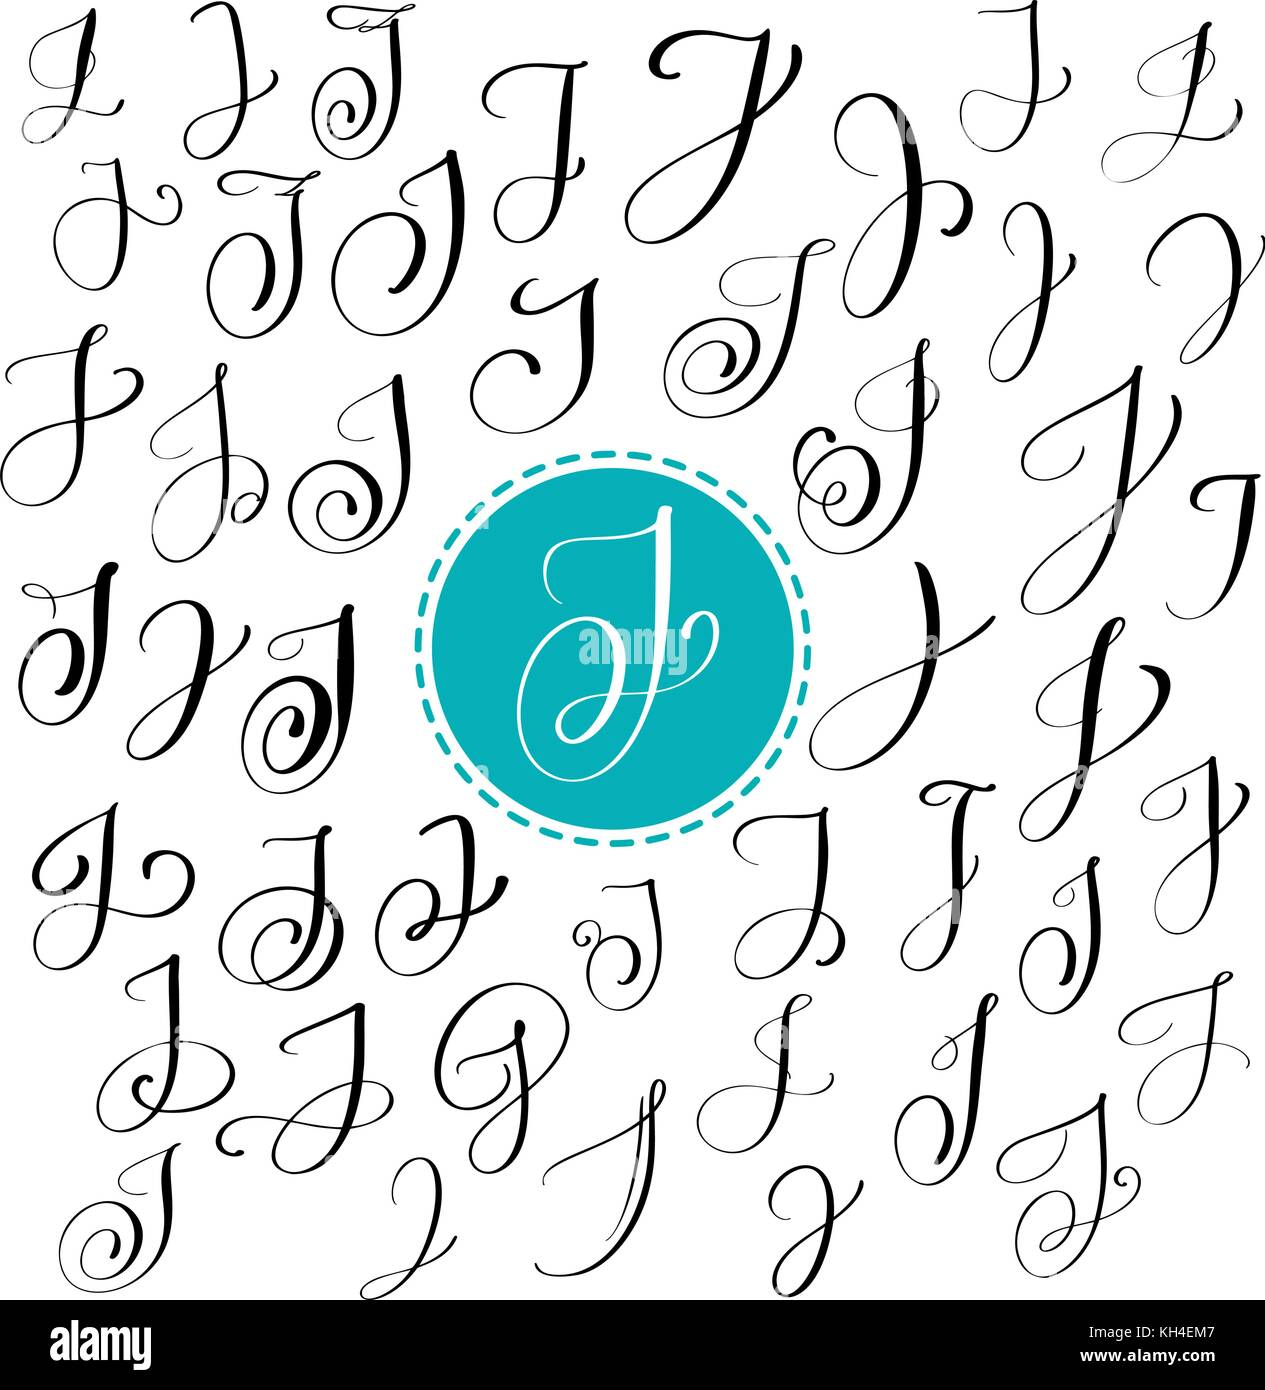 Set Of Hand Drawn Vector Calligraphy Letter J Script Font Isolated Letters Written With Ink Handwritten Brush Style Lettering For Logos Packaging